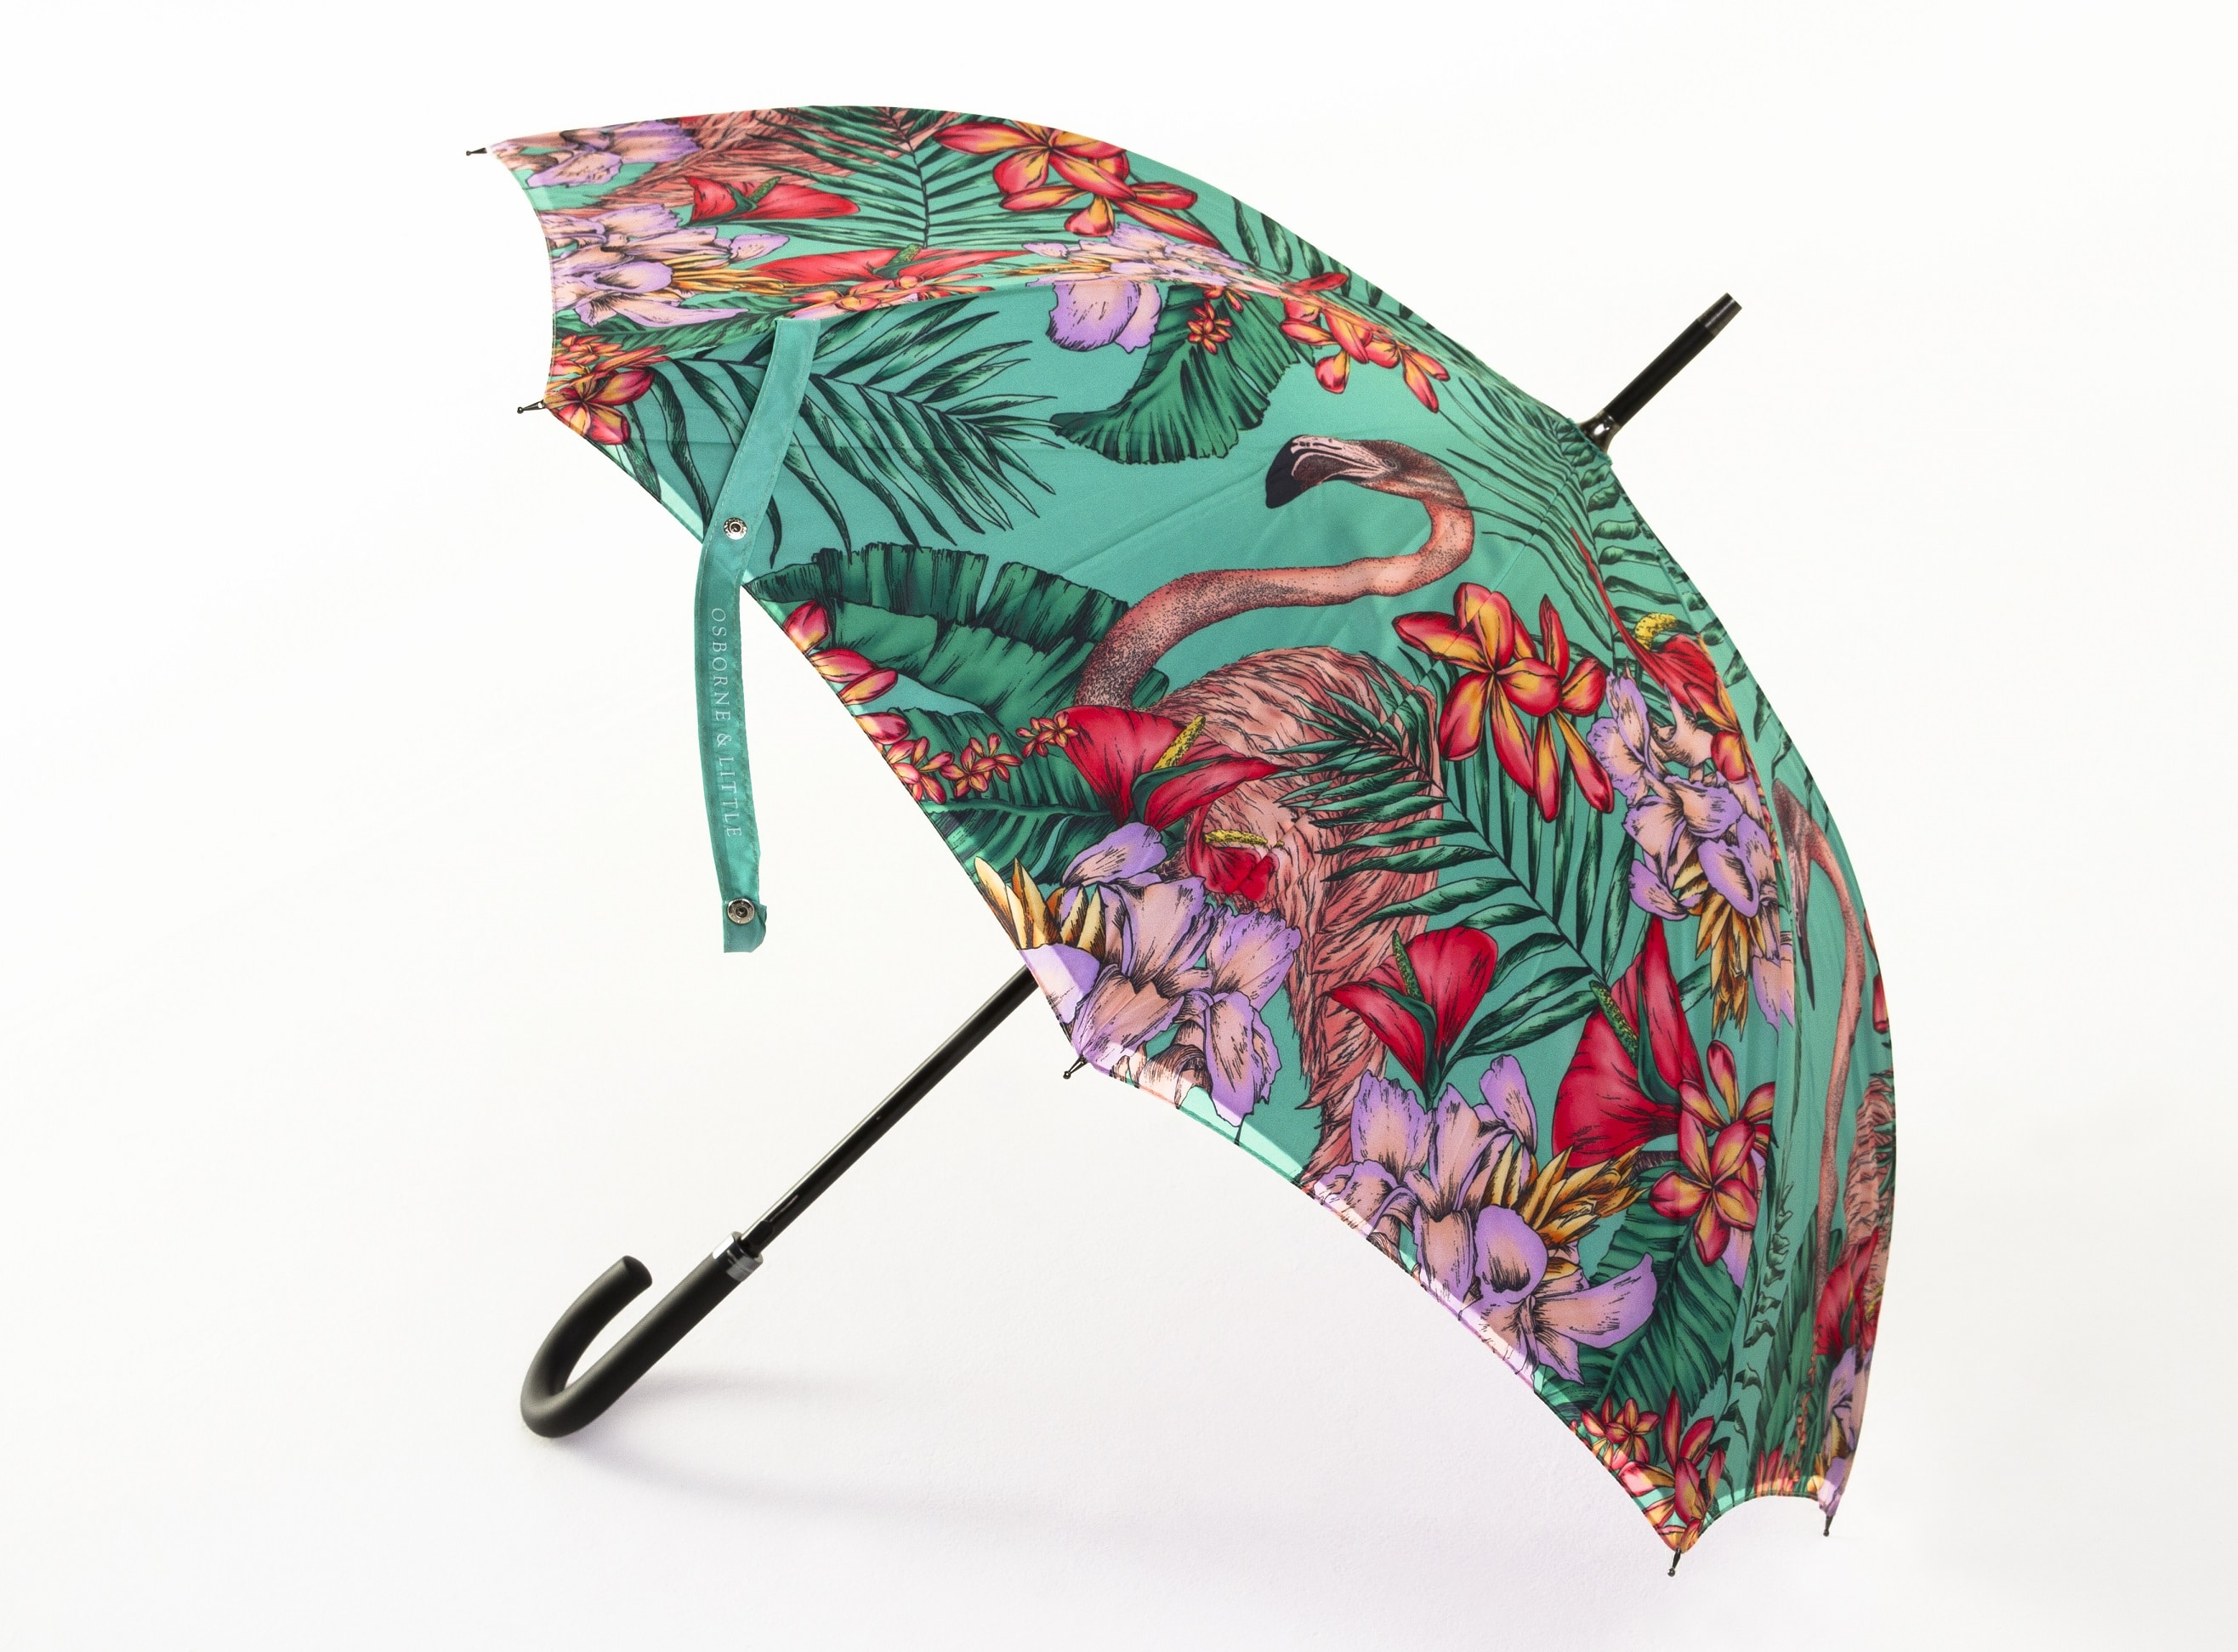 Uber Walker Promotional Umbrella